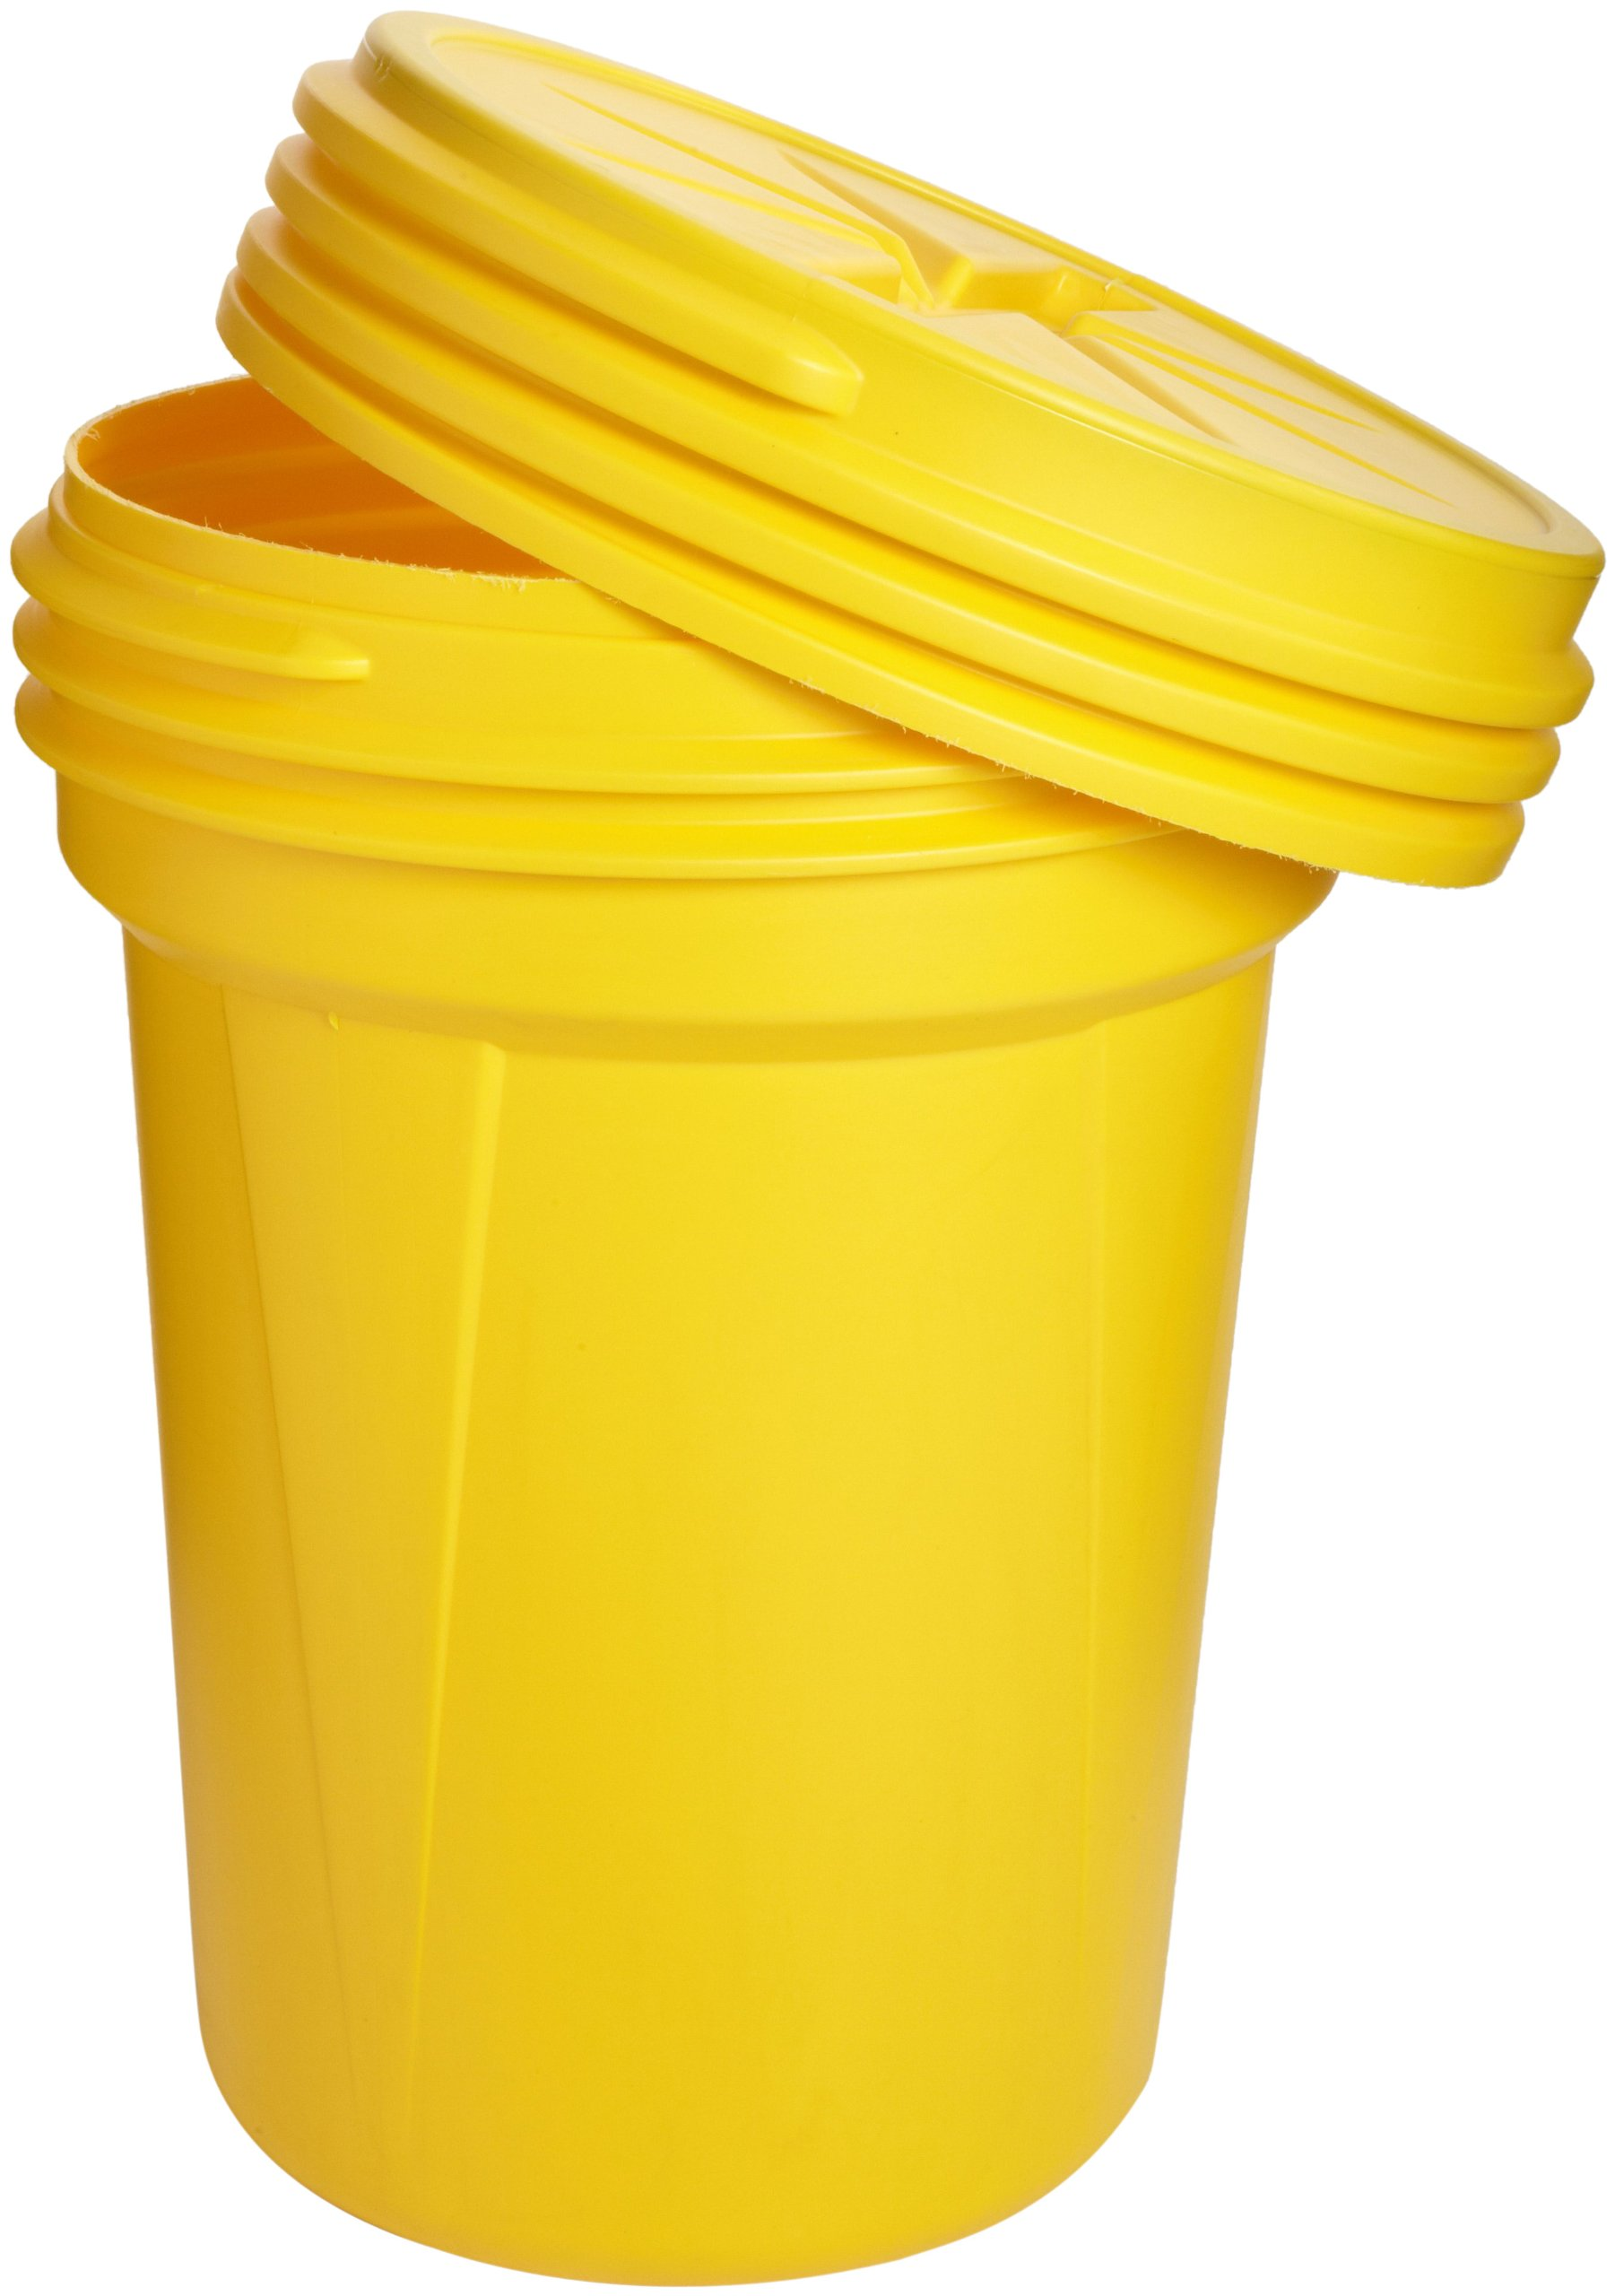 Eagle 1600SL Yellow High Density Polyethylene Lab Pack Drum with Plastic Screw-on Lid, 30 gallon Capacity, 28.25'' Height, 22.5'' Diameter by Eagle